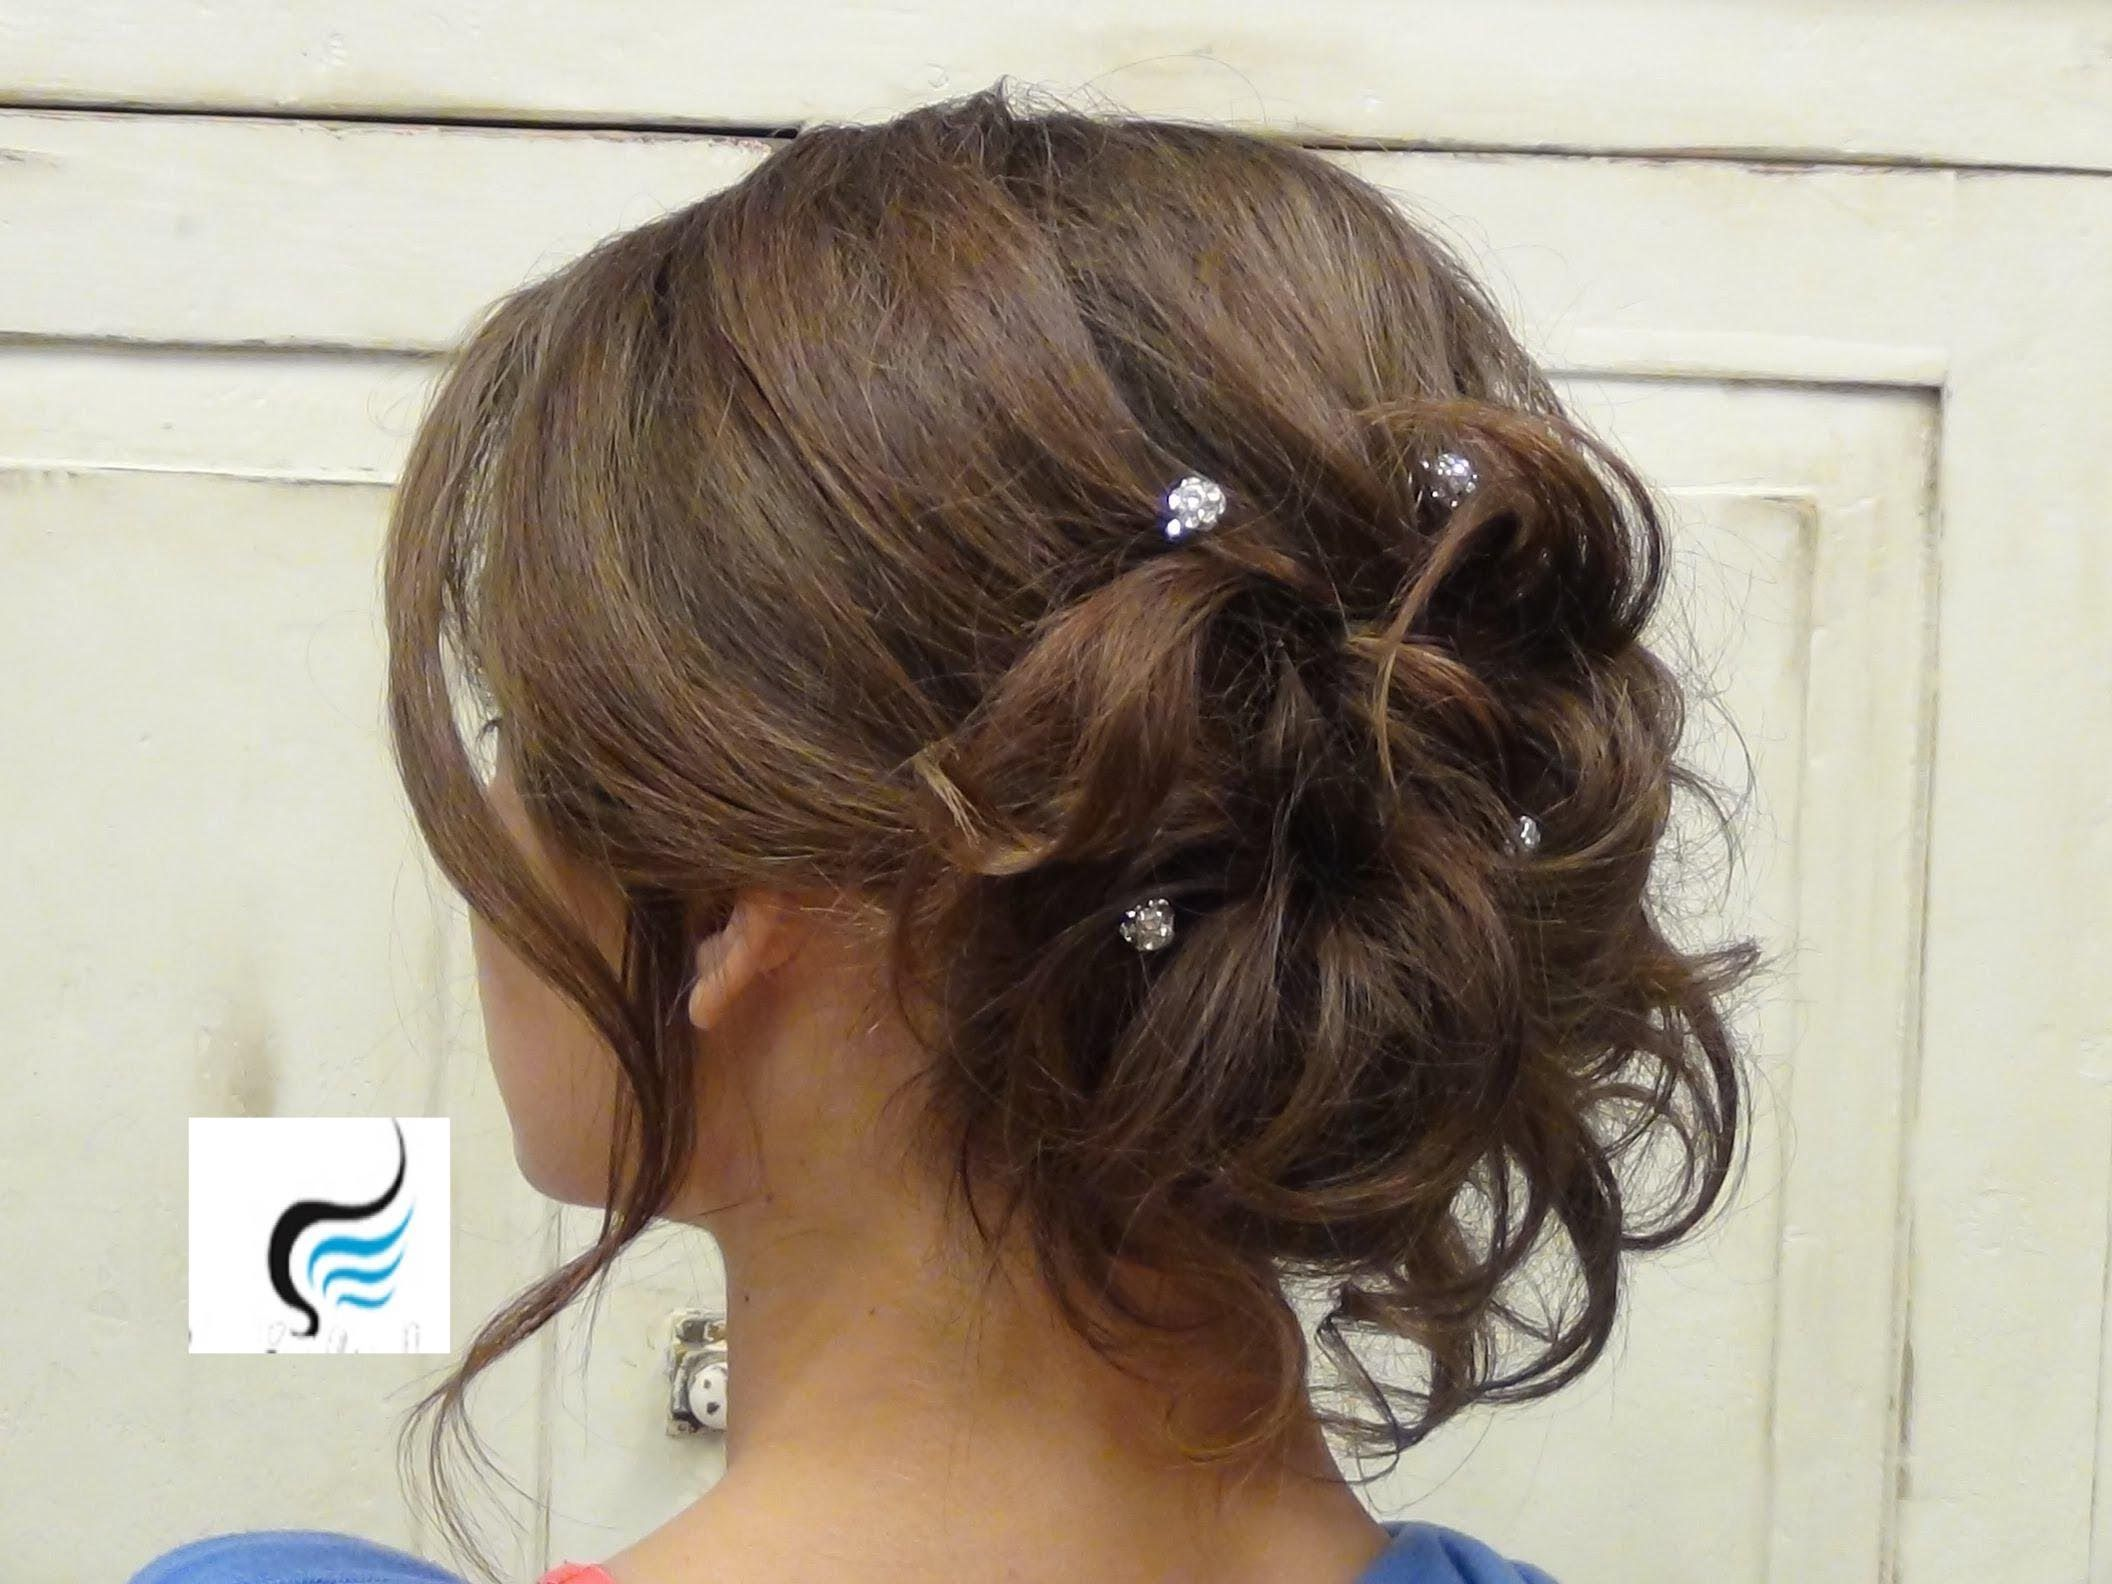 Hairstyles For Long Hair Put Up Hairstyles Hairstylesforlonghair Long Hair Styles Long Hair Updo Curled Updo